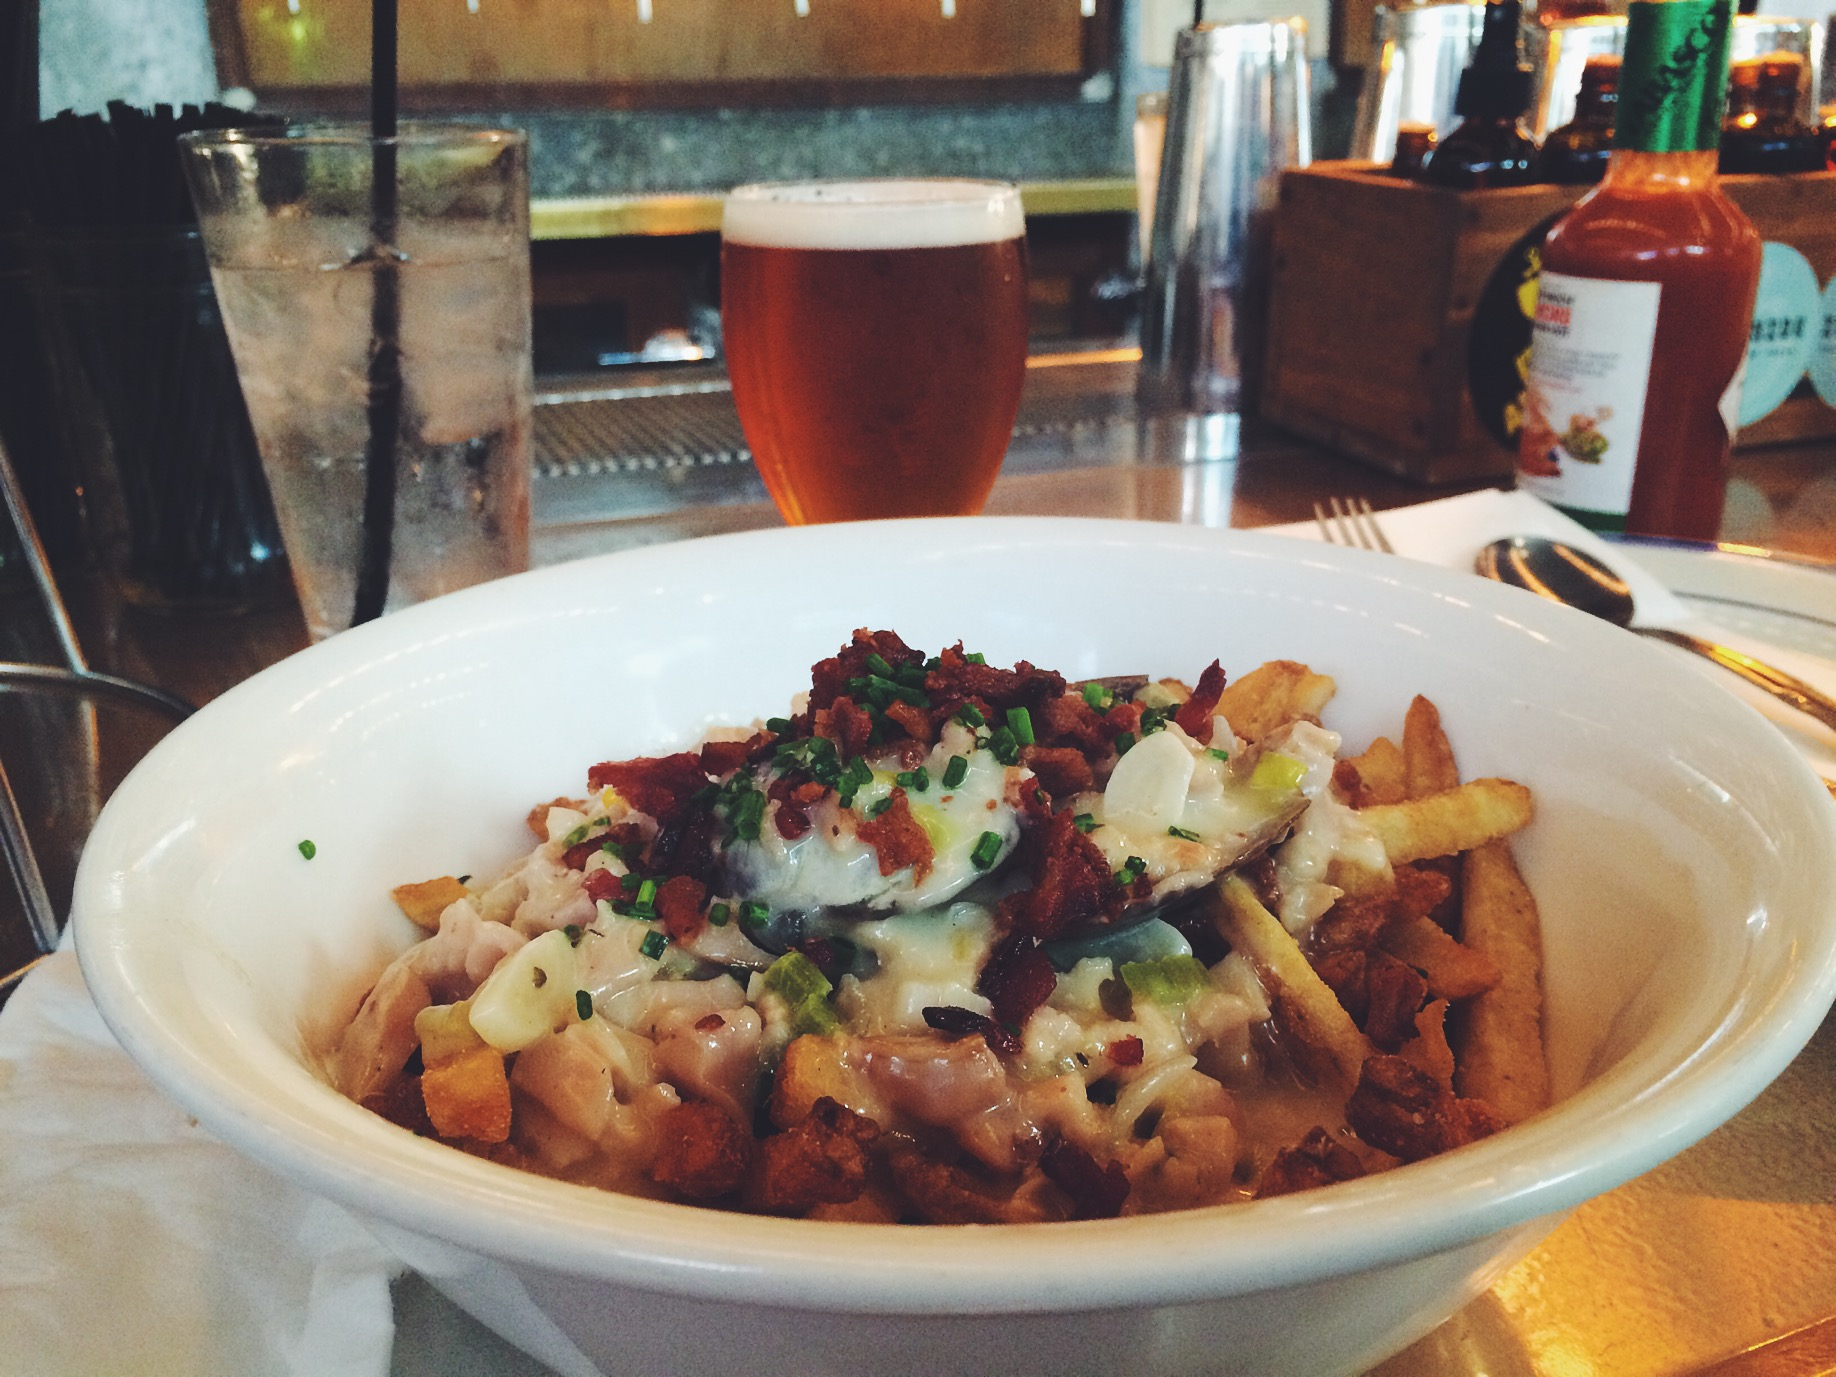 The Chowder Fries.